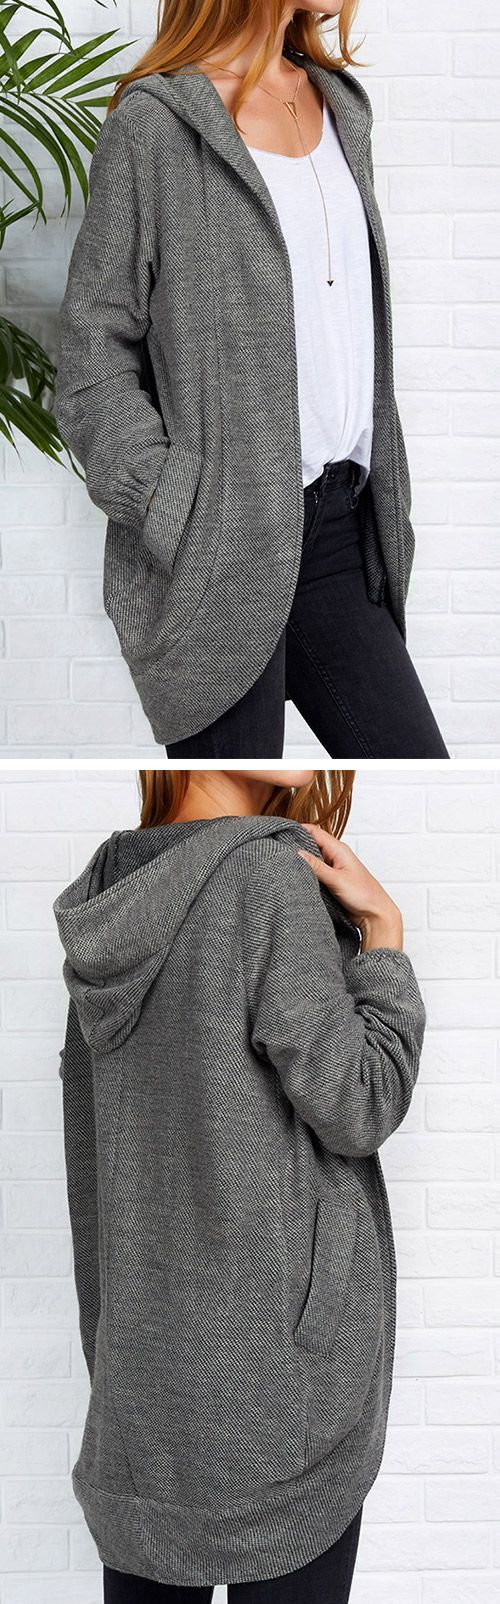 Big Sale-Only $34.99! Start your day off right in Hooded coat. All those hooded design and open front and pocket at sides in perfect harmony.Share more wonderful items at Cupshe.com !